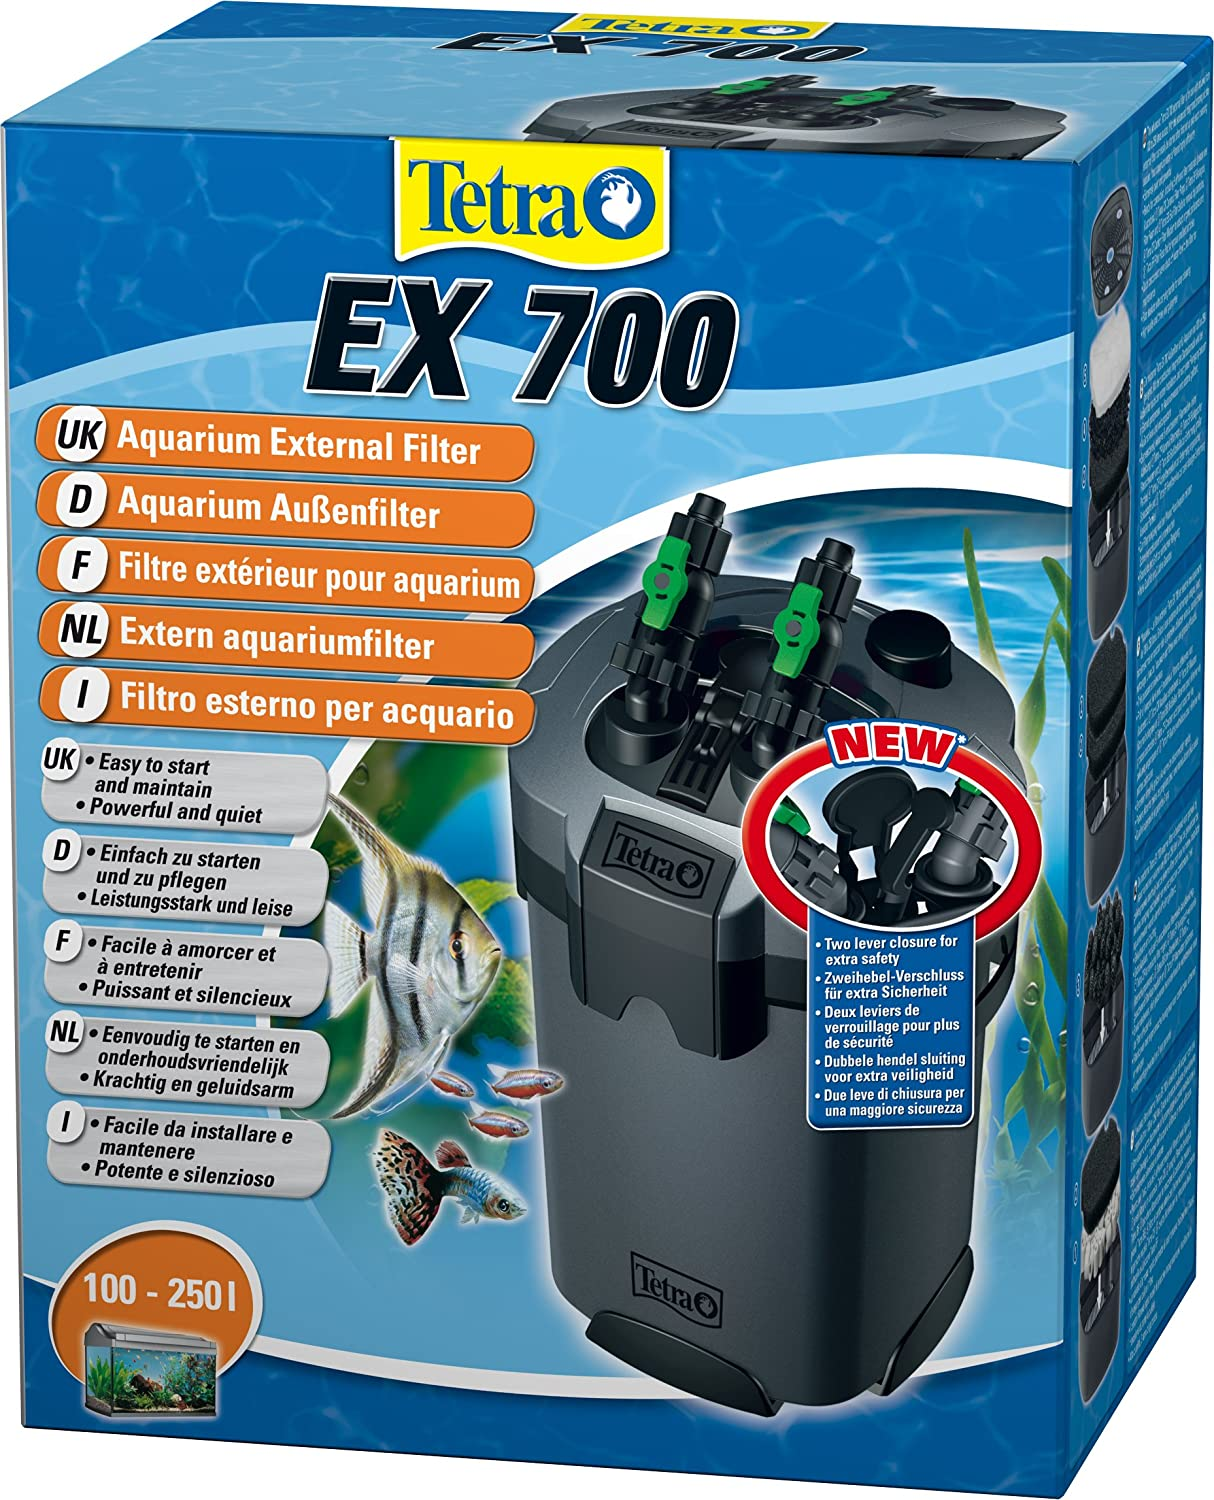 91ri1lf9JjL._SL1500_ tetra tec ex 700 external filter amazon co uk pet supplies  at bakdesigns.co